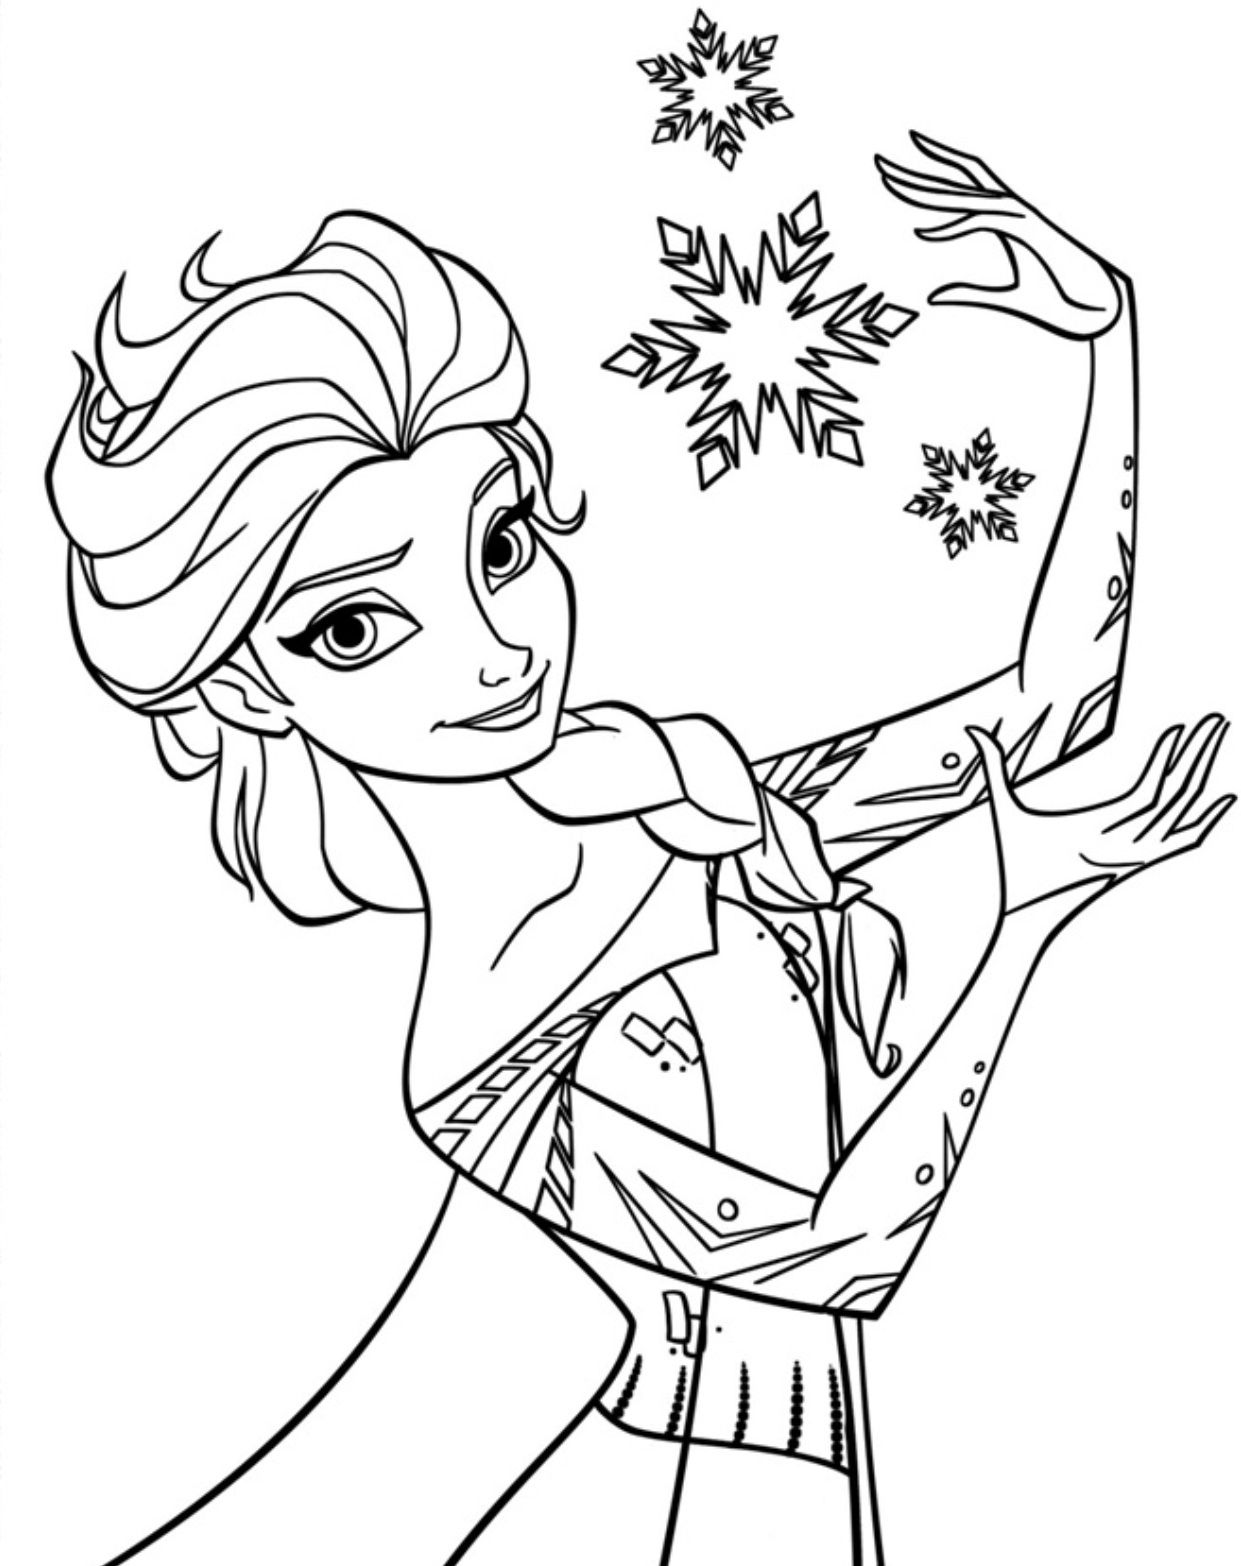 Coloring pages for frozen printable - Frozen Callering Pages Download And Print Printable Frozen Coloring Page